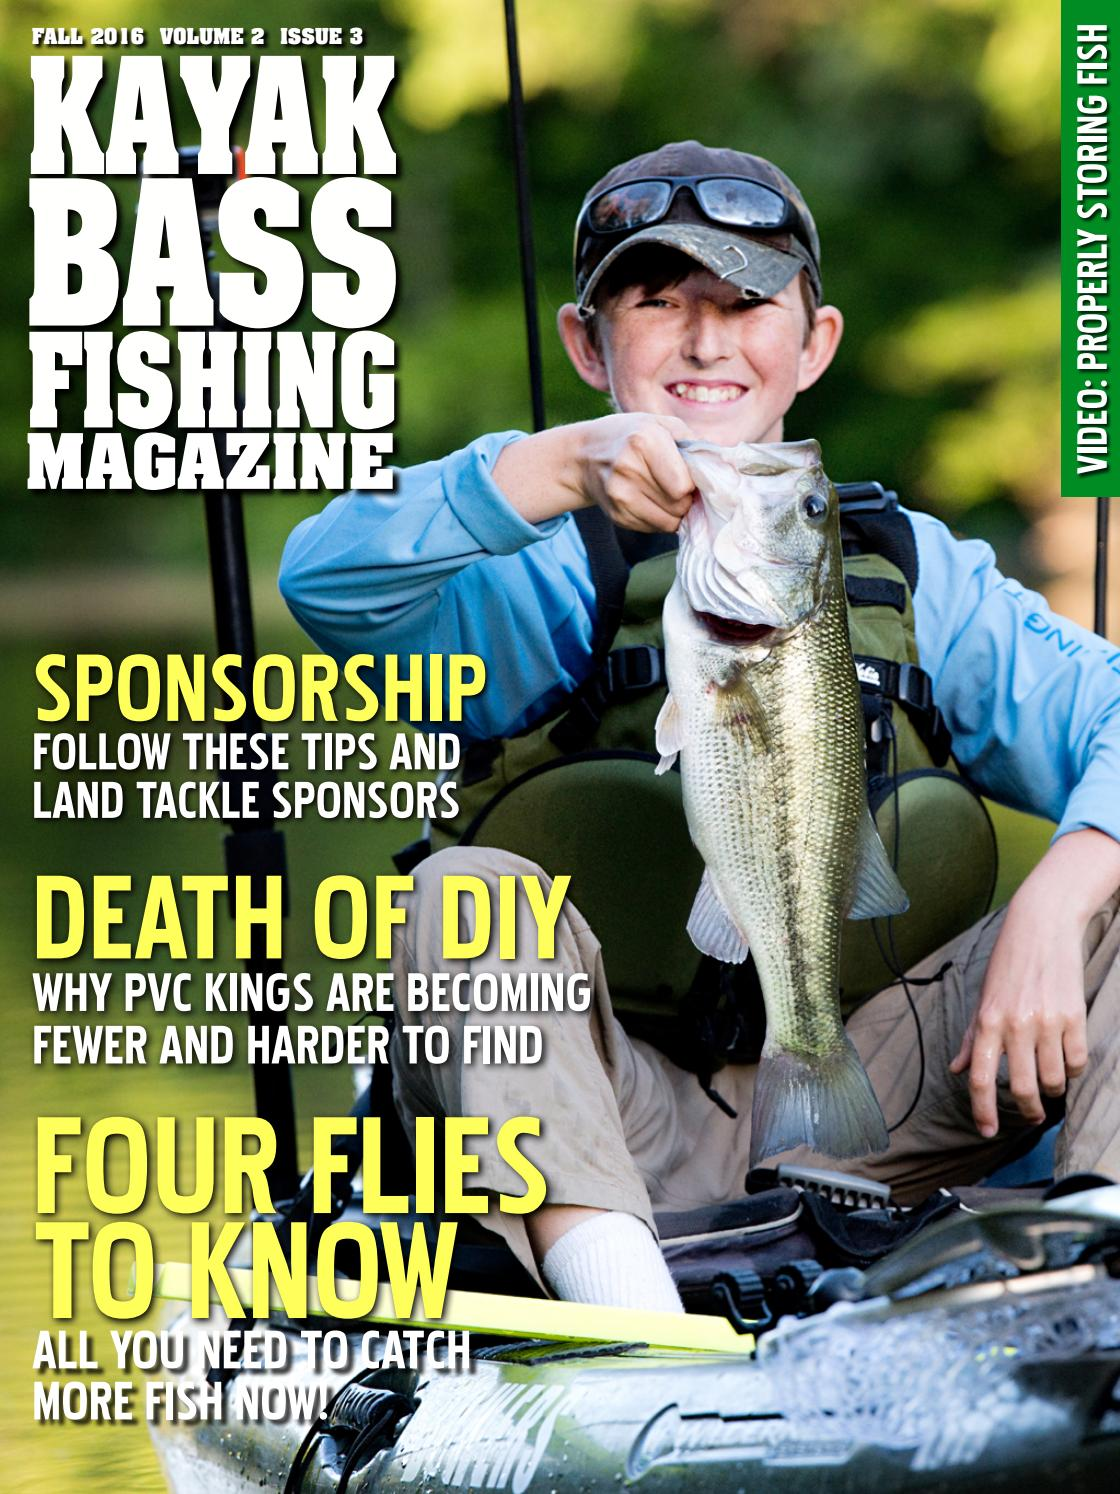 Kayak bass fishing magazine fall 2016 by crooked creek for Bass fishing magazine